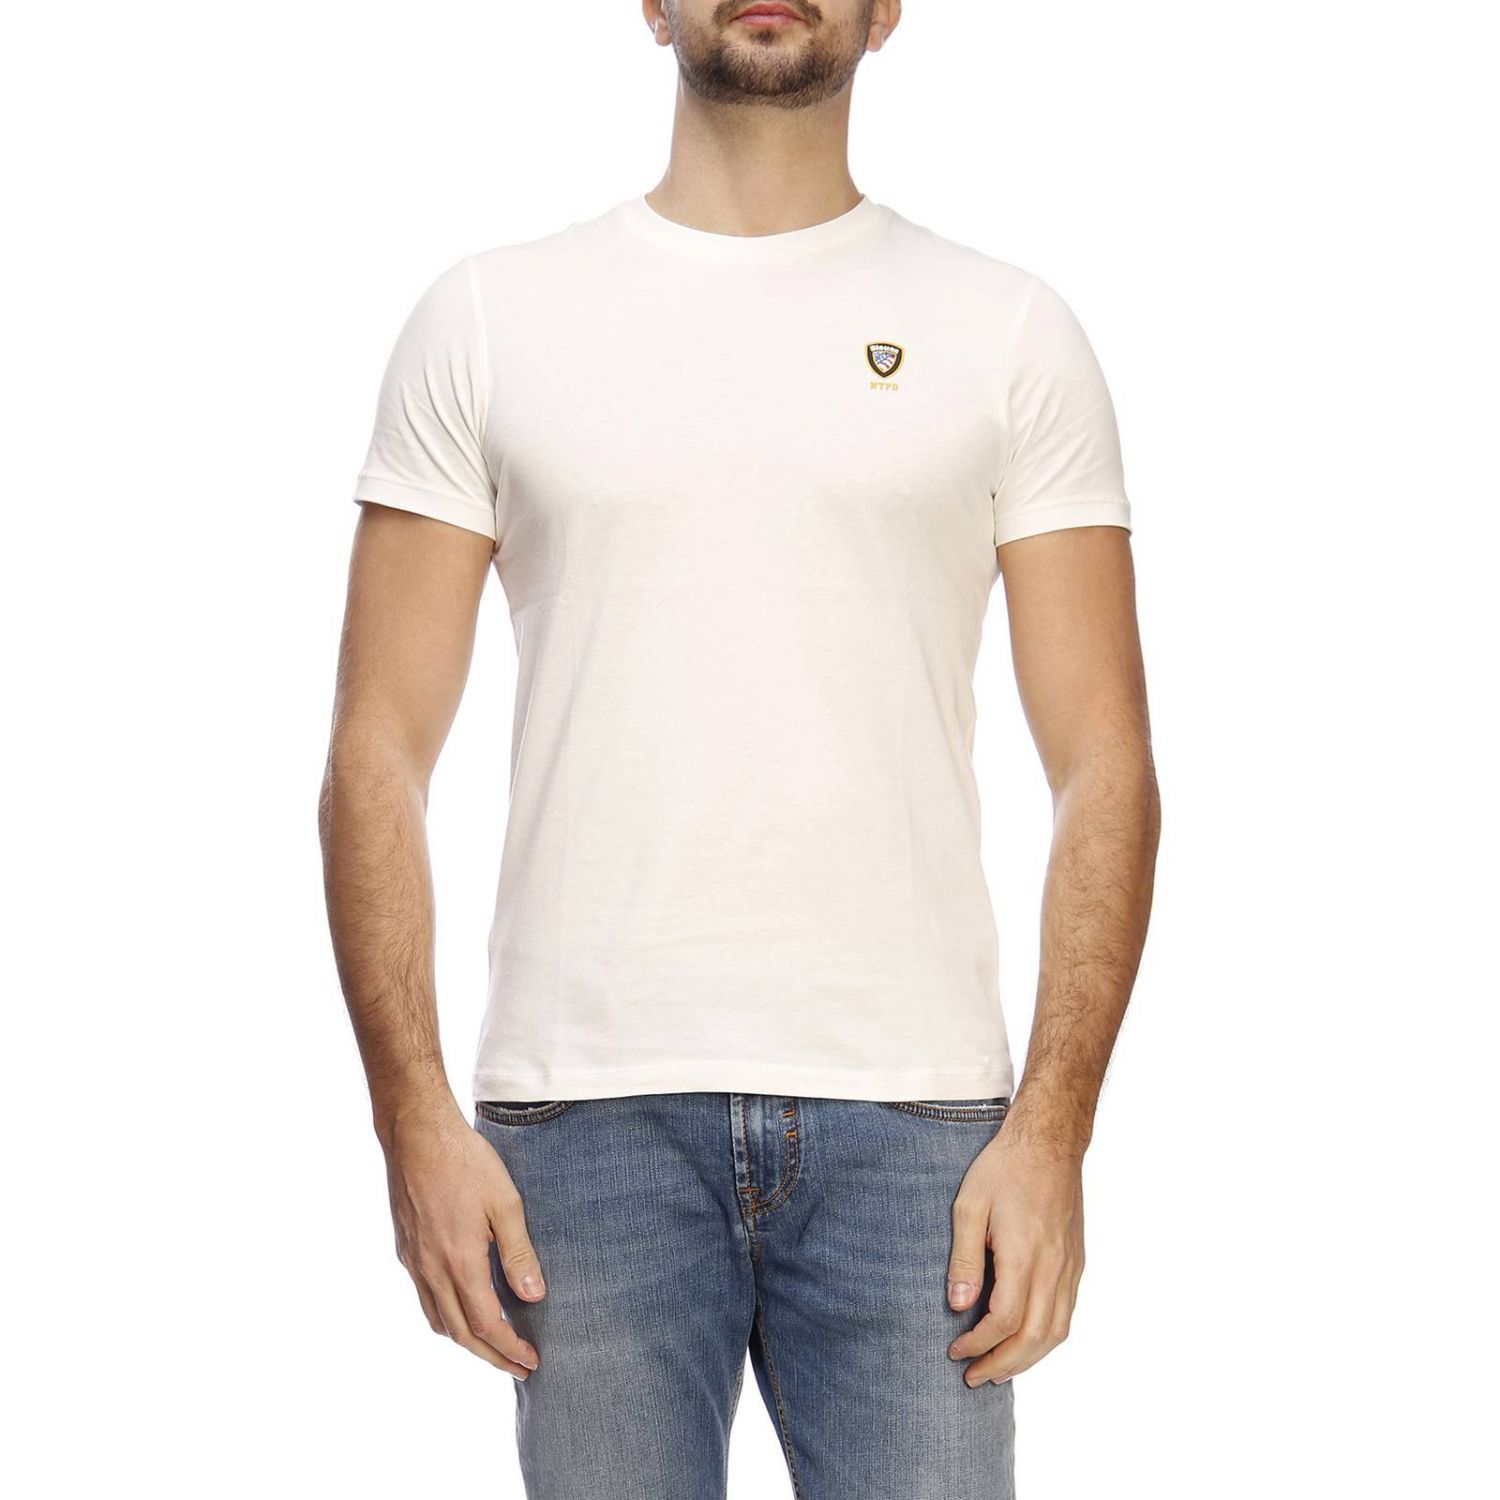 T-shirt men Blauer ivory 1